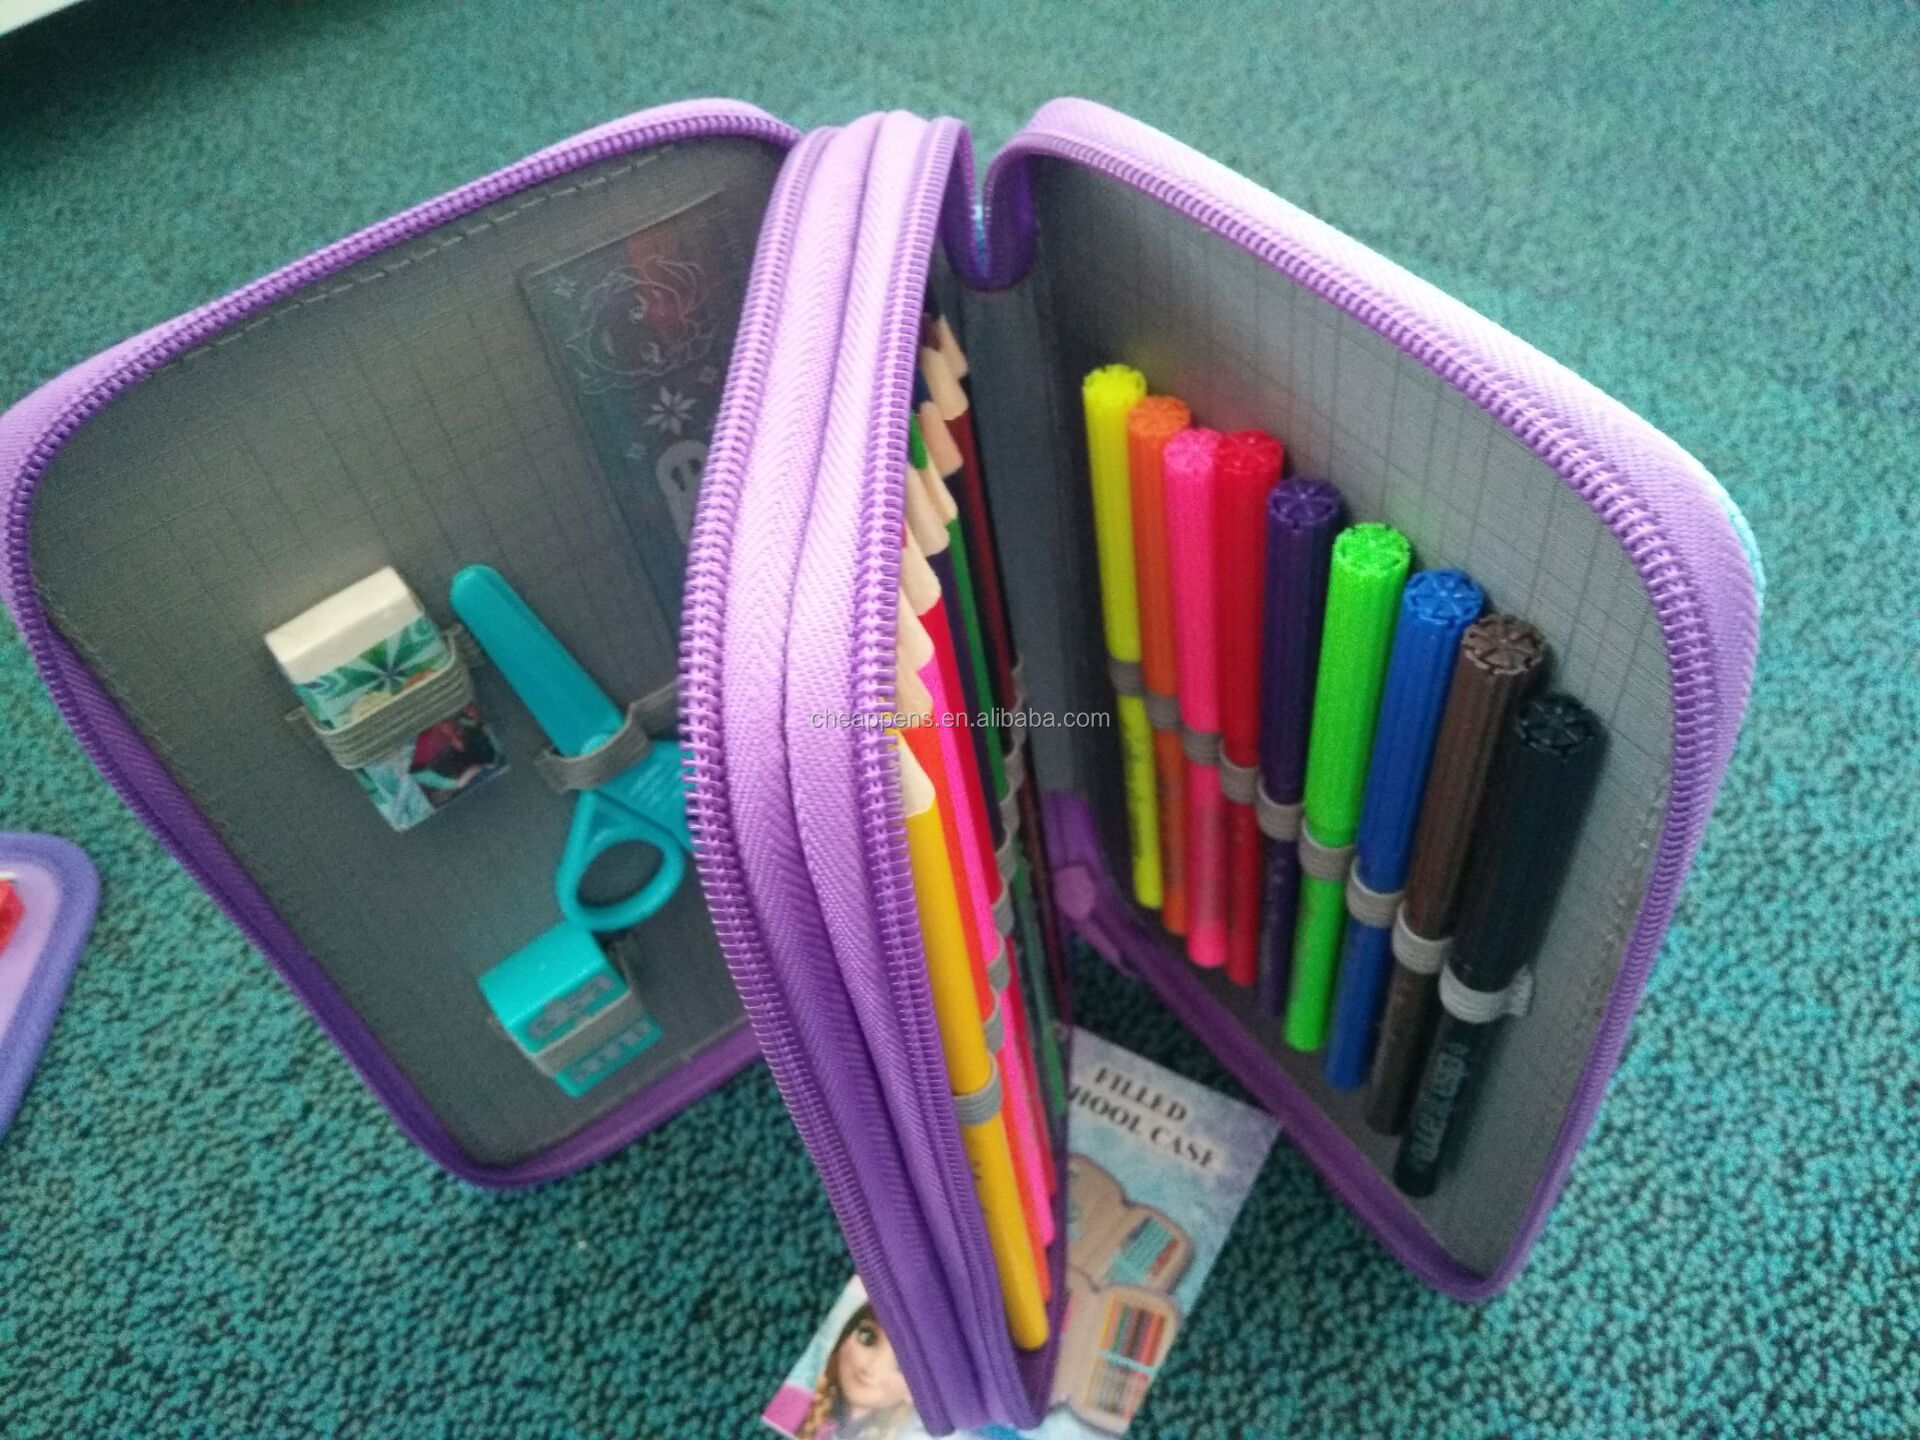 cute stationery set for school supply